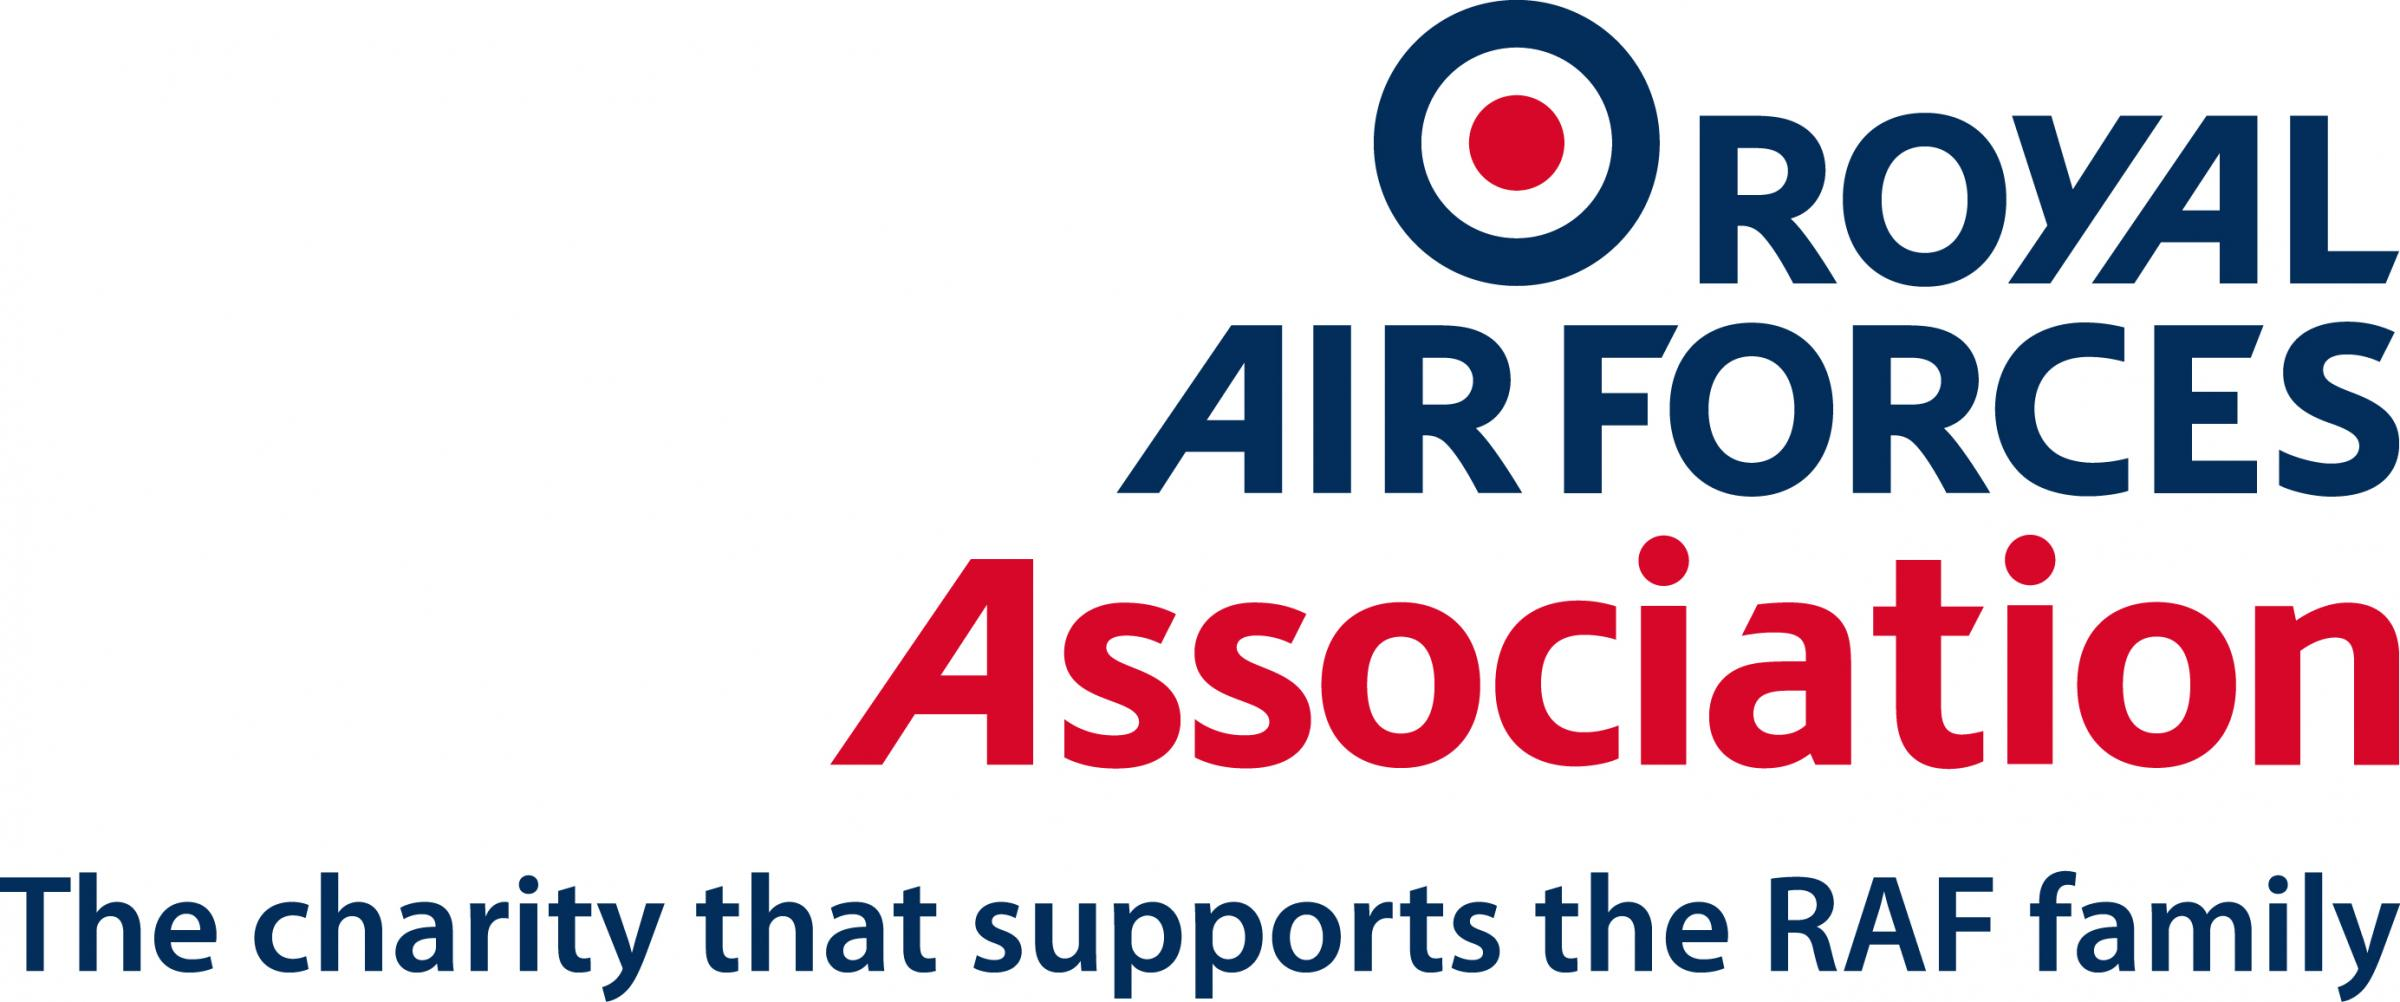 Corsham & Chippenham Branch RAFA: CELEBRATING 100 YEARS OF THE ROYAL AIR FORCE